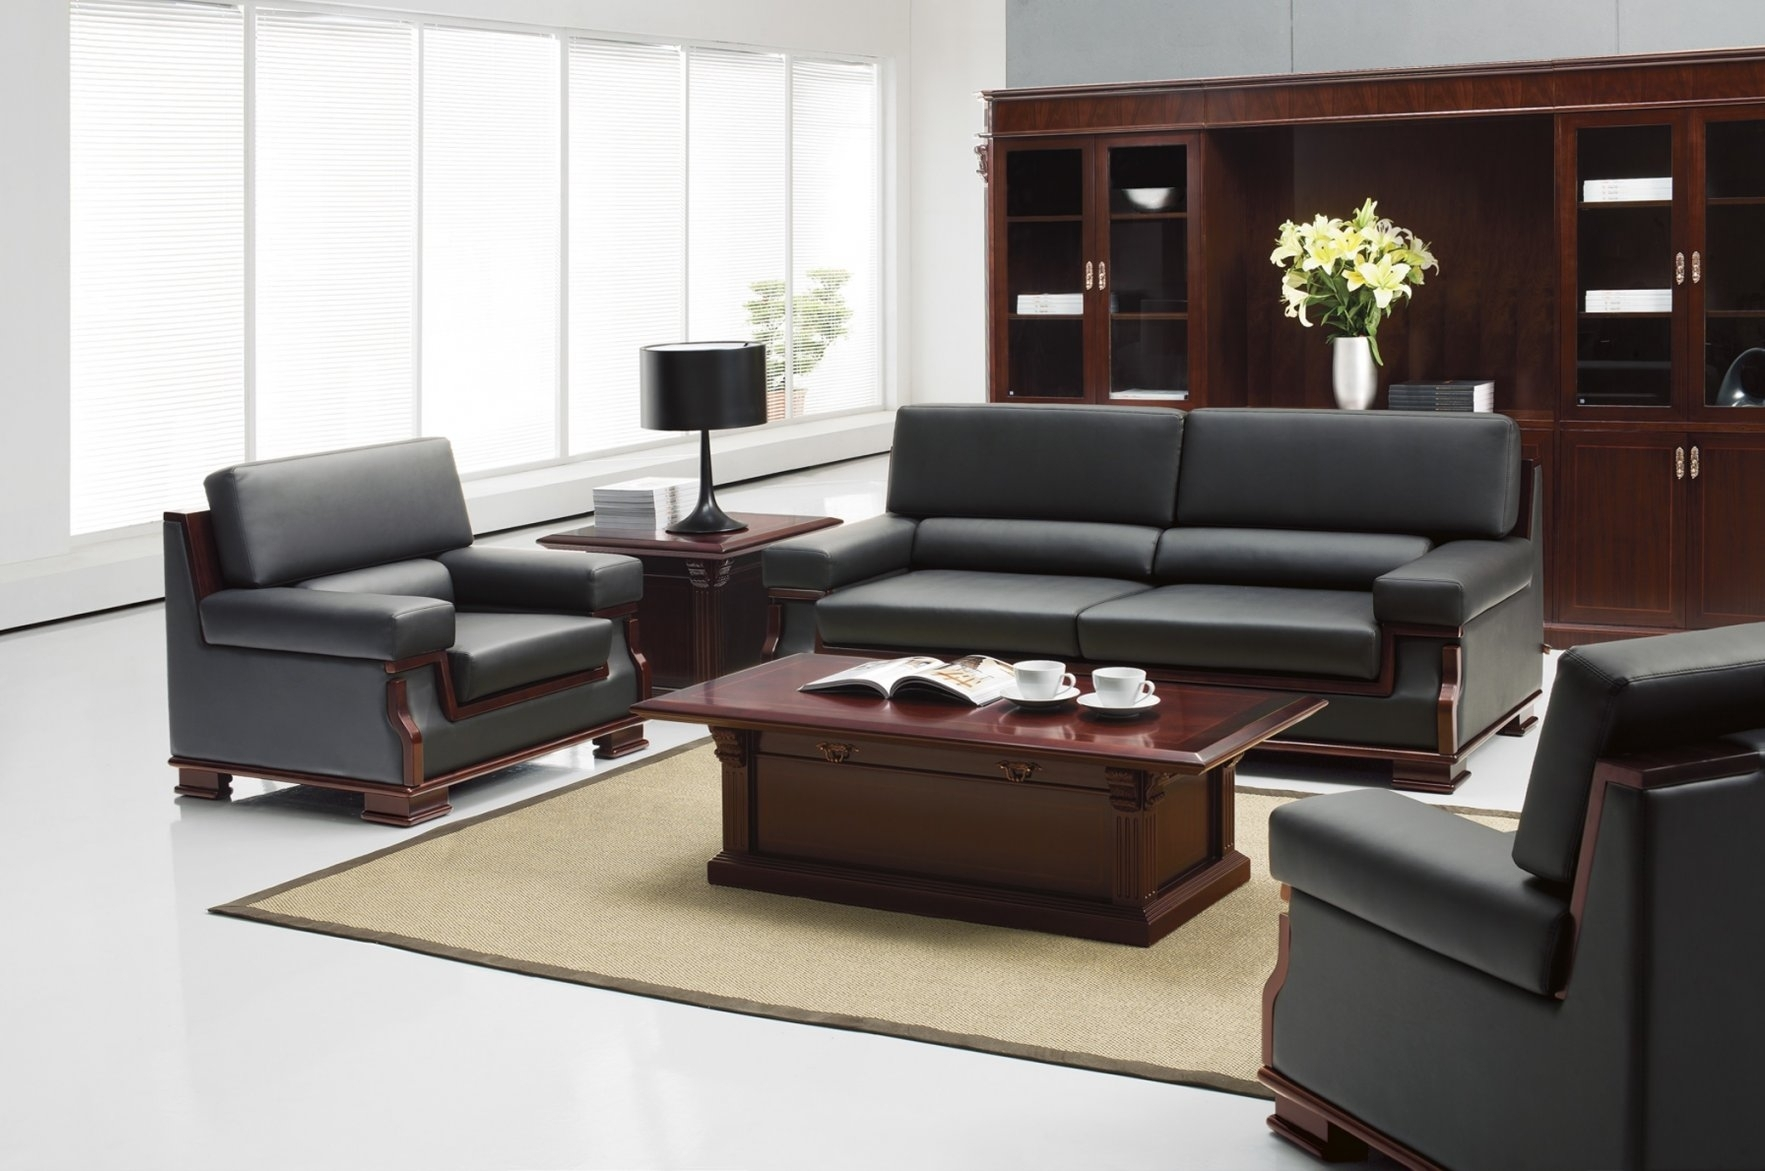 Executive Sofa | Contemporary Office Sofas Intended For Contemporary With Office Sofas (Photo 6 of 10)